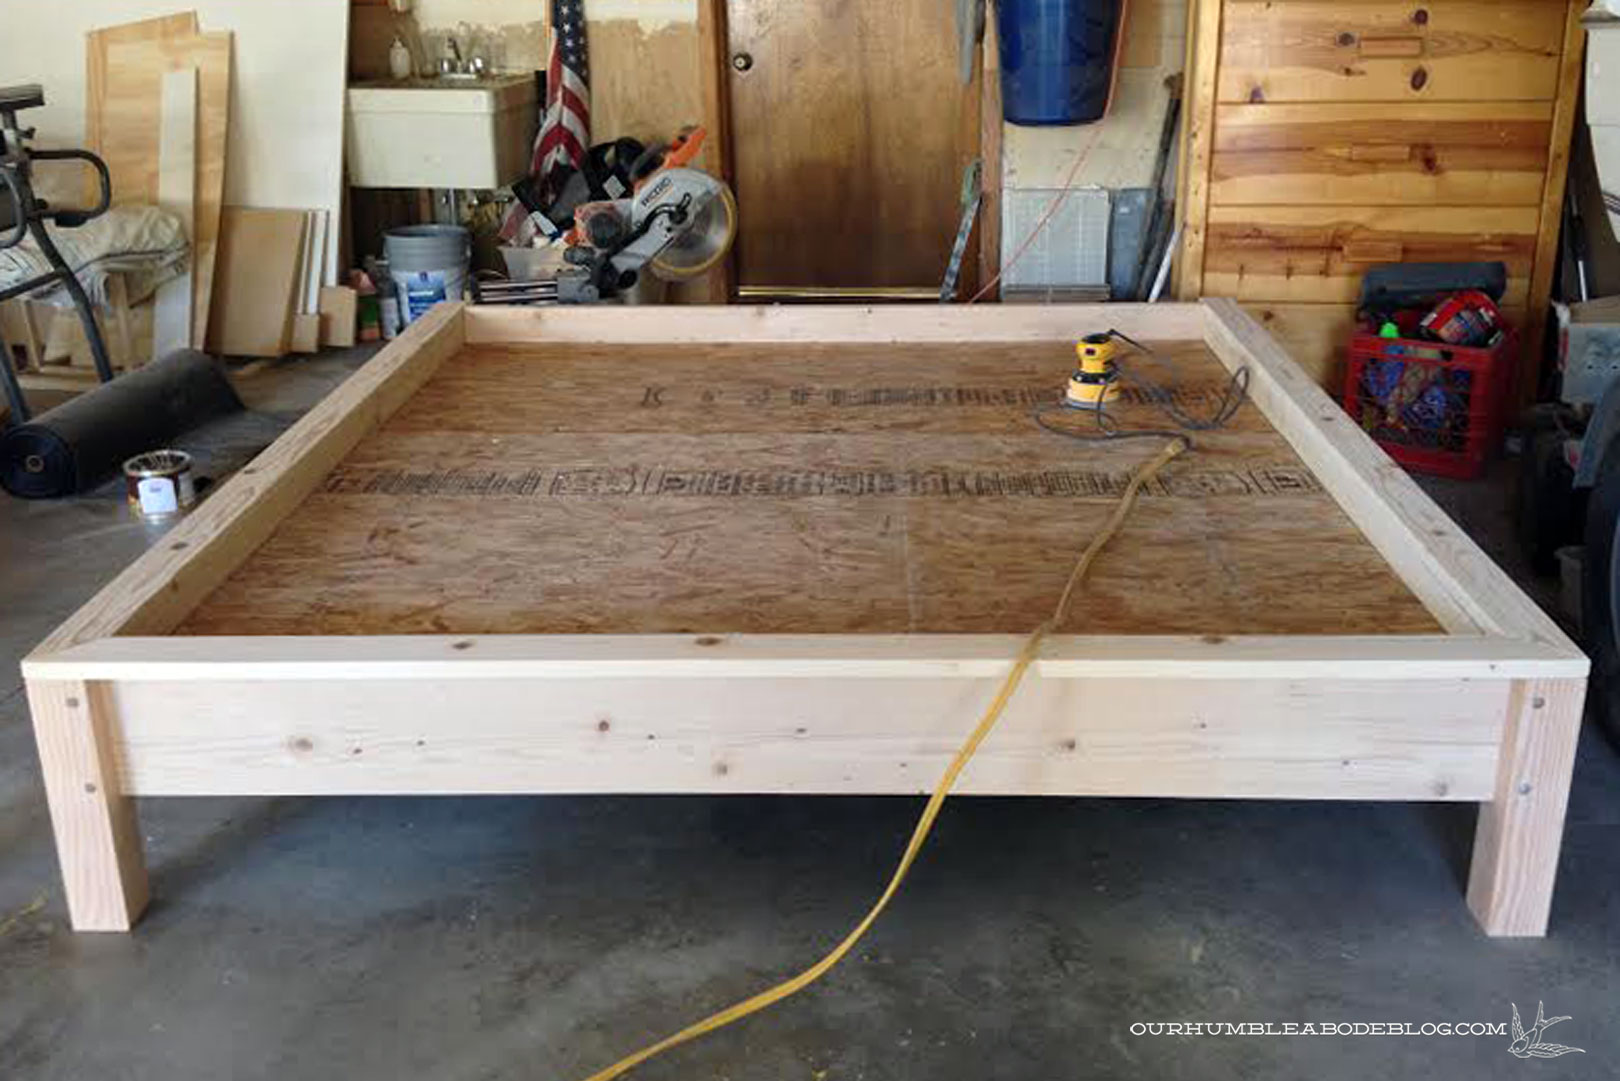 Diy king bed frame plans - Building Bed Frame Assembled In Garage